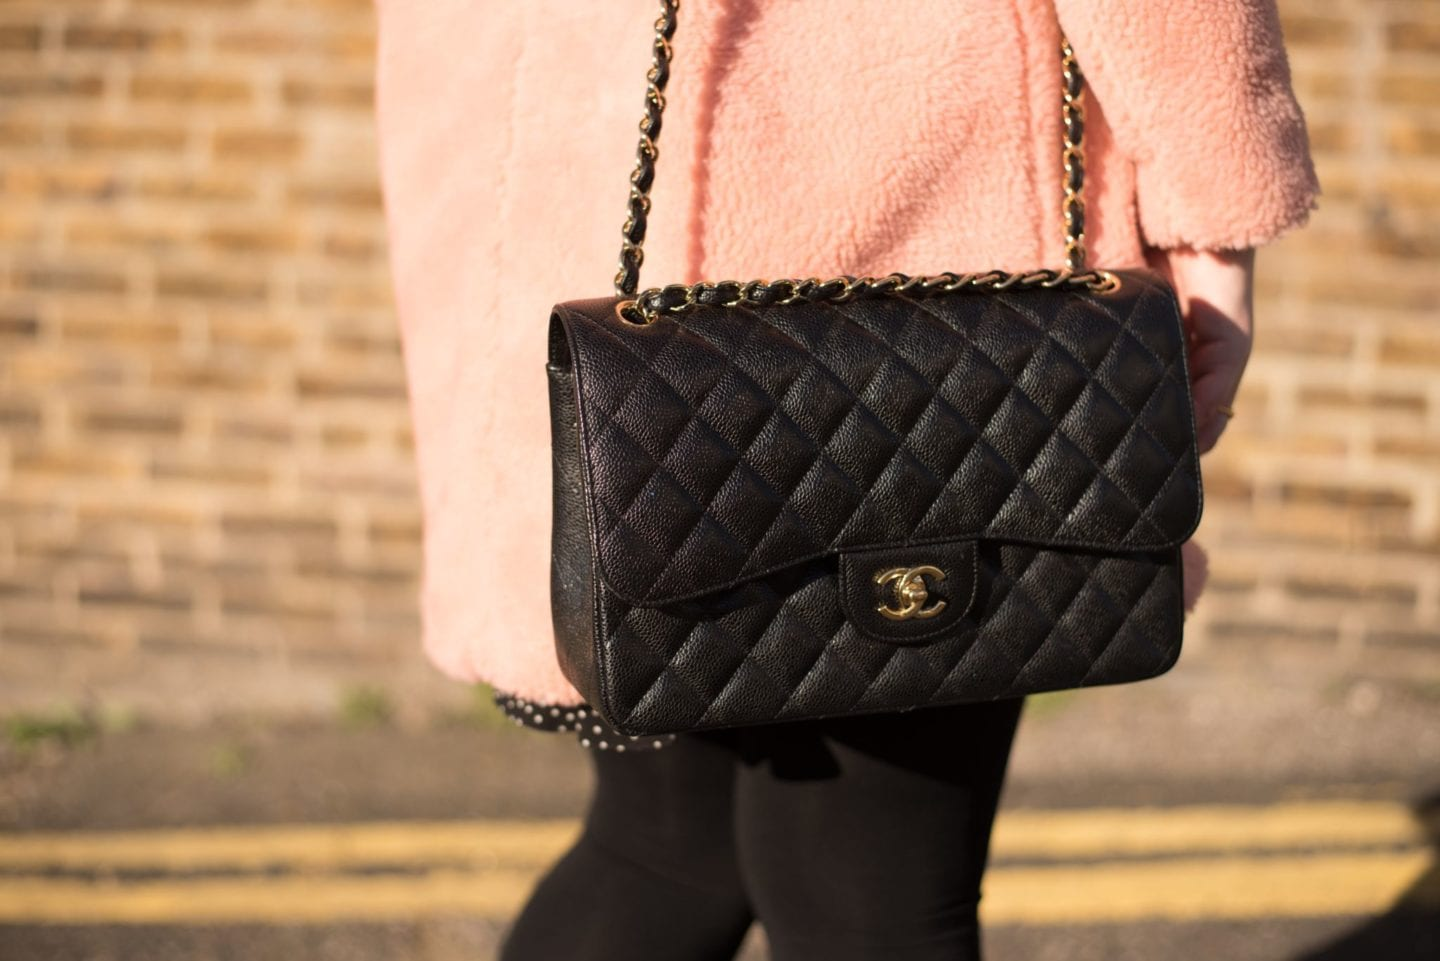 chanel handbag jumbo black caviar leather